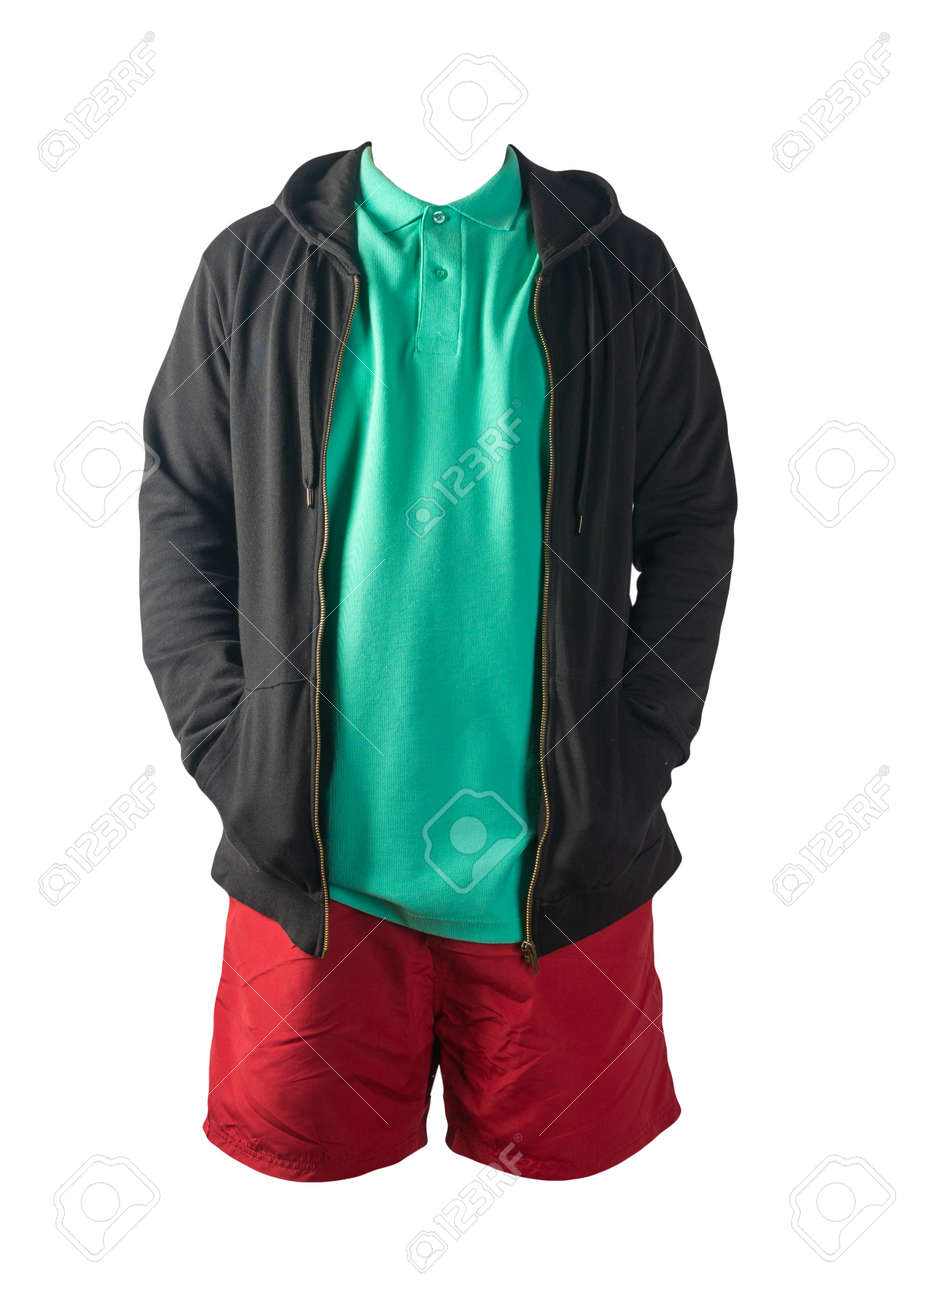 black sweatshirt with iron zipper hoodie, green t-shirt and red sports shorts isolated on white background. casual sportswear - 172140057